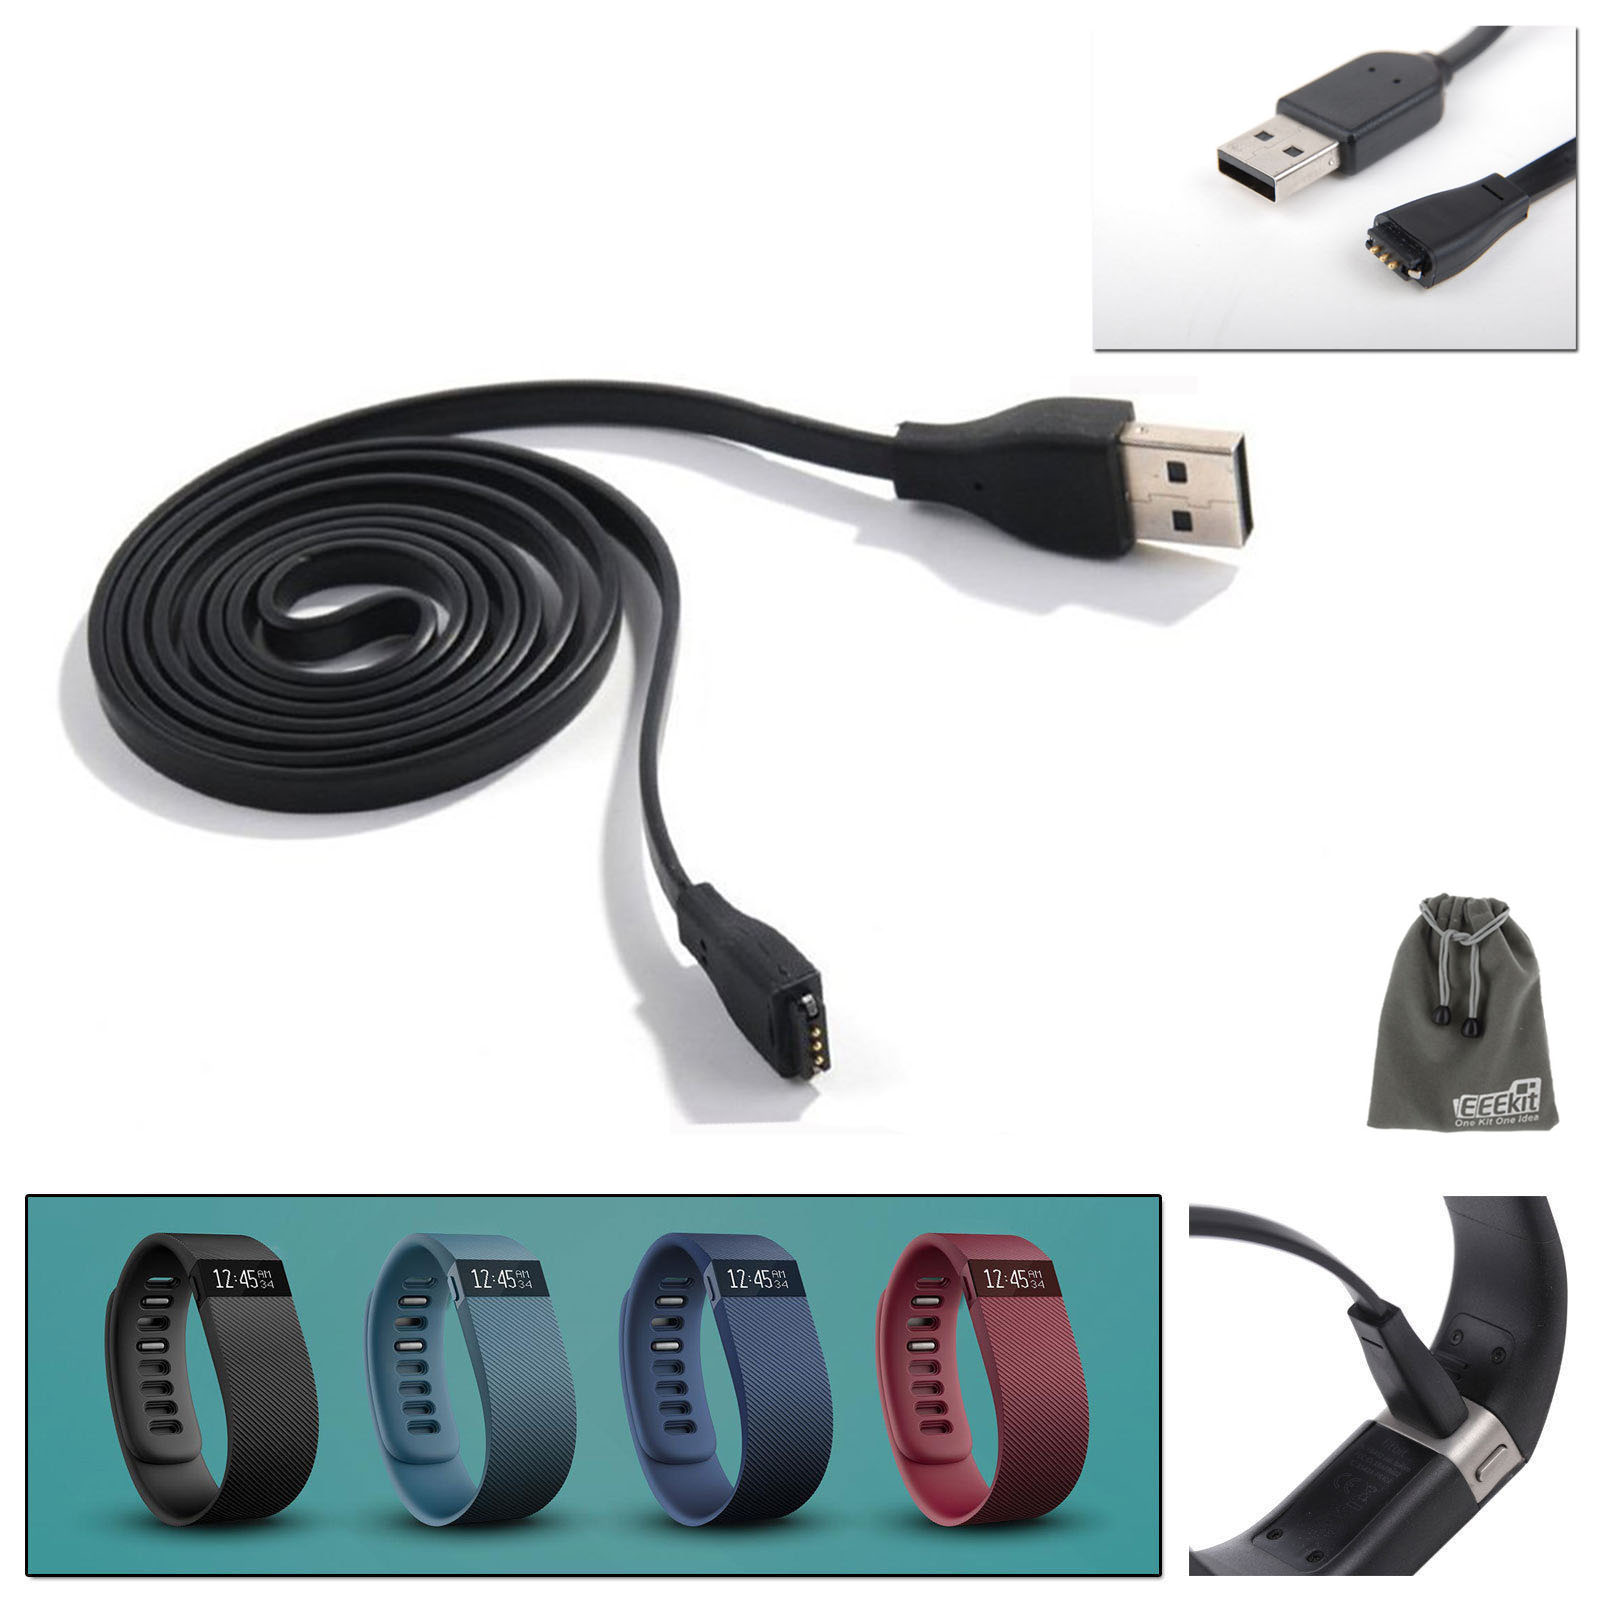 EEEKit for Fitbit Charge/Force Wristband Fitness /Activity Tracker,Replacement Charger Cable+Wall Charger Adapter